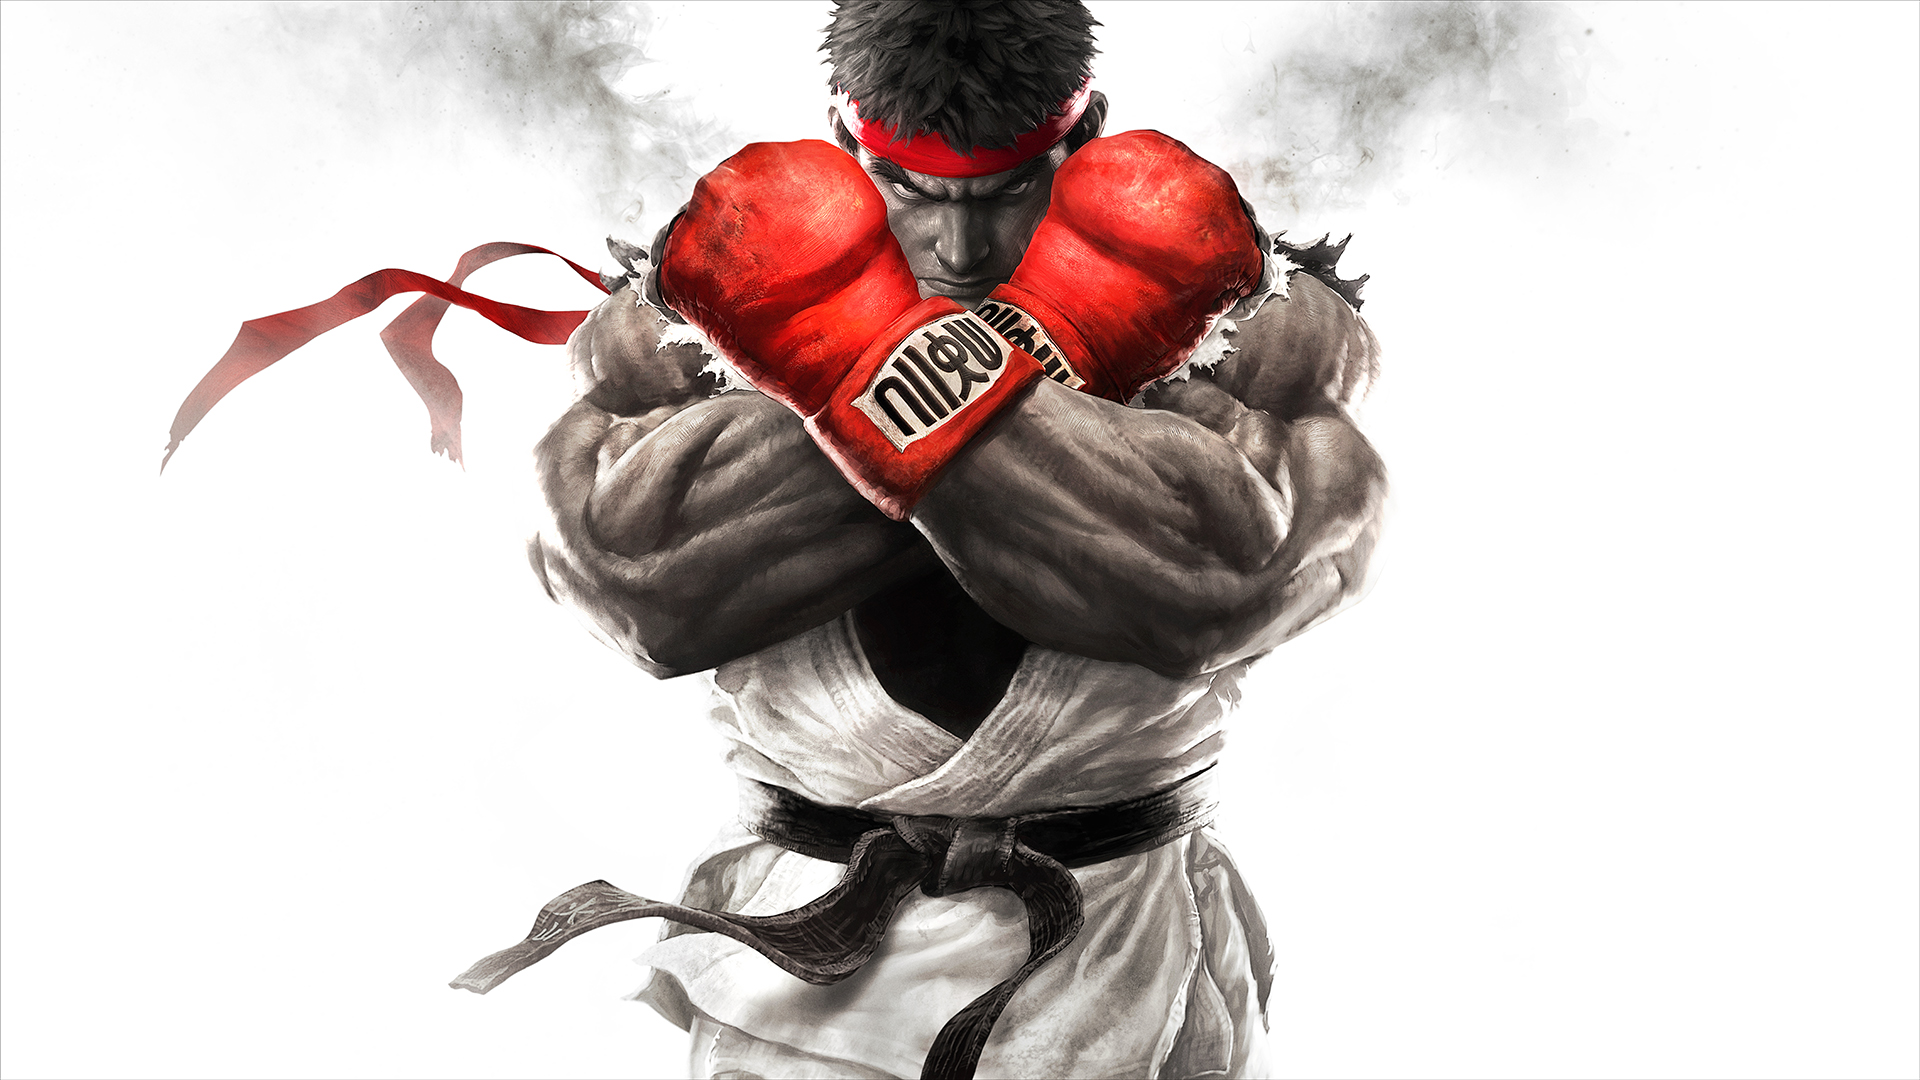 Street Fighter V 256.82 Kb